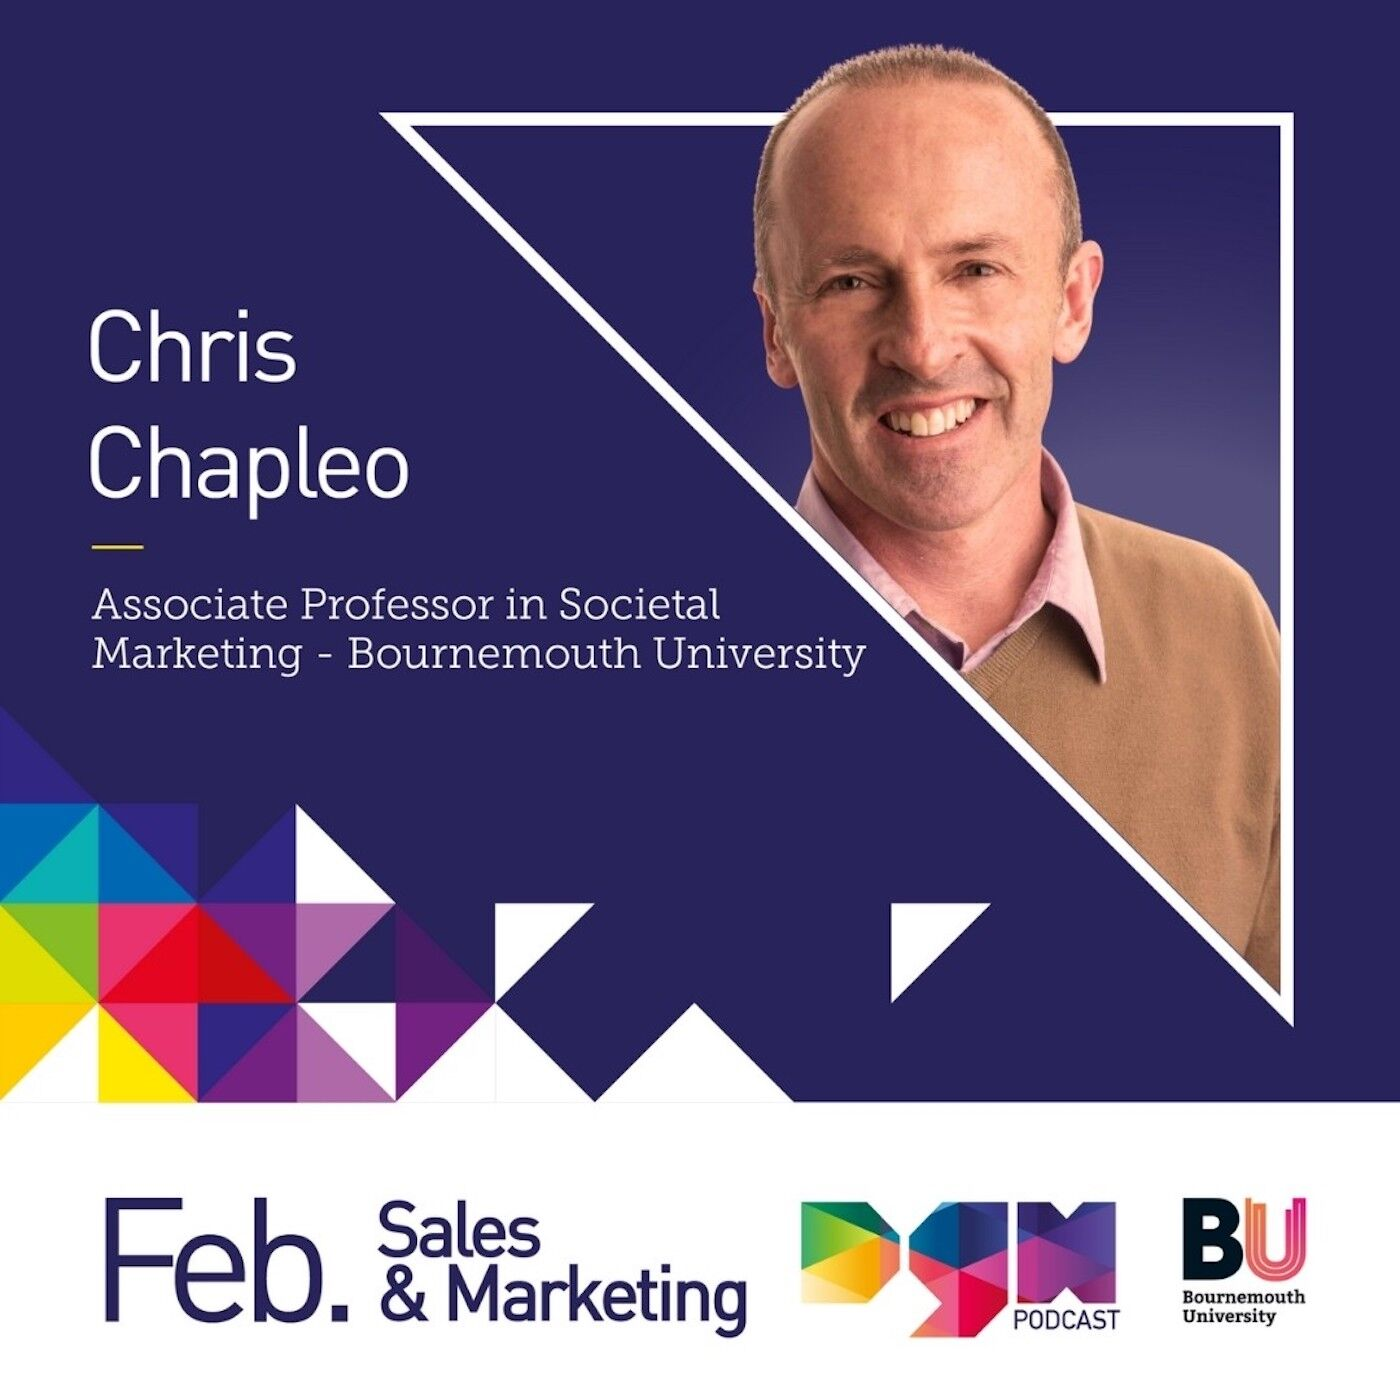 Building a trusted brand with Bournemouth University's Associate Professor, Dr Chris Chapleo #S2E2